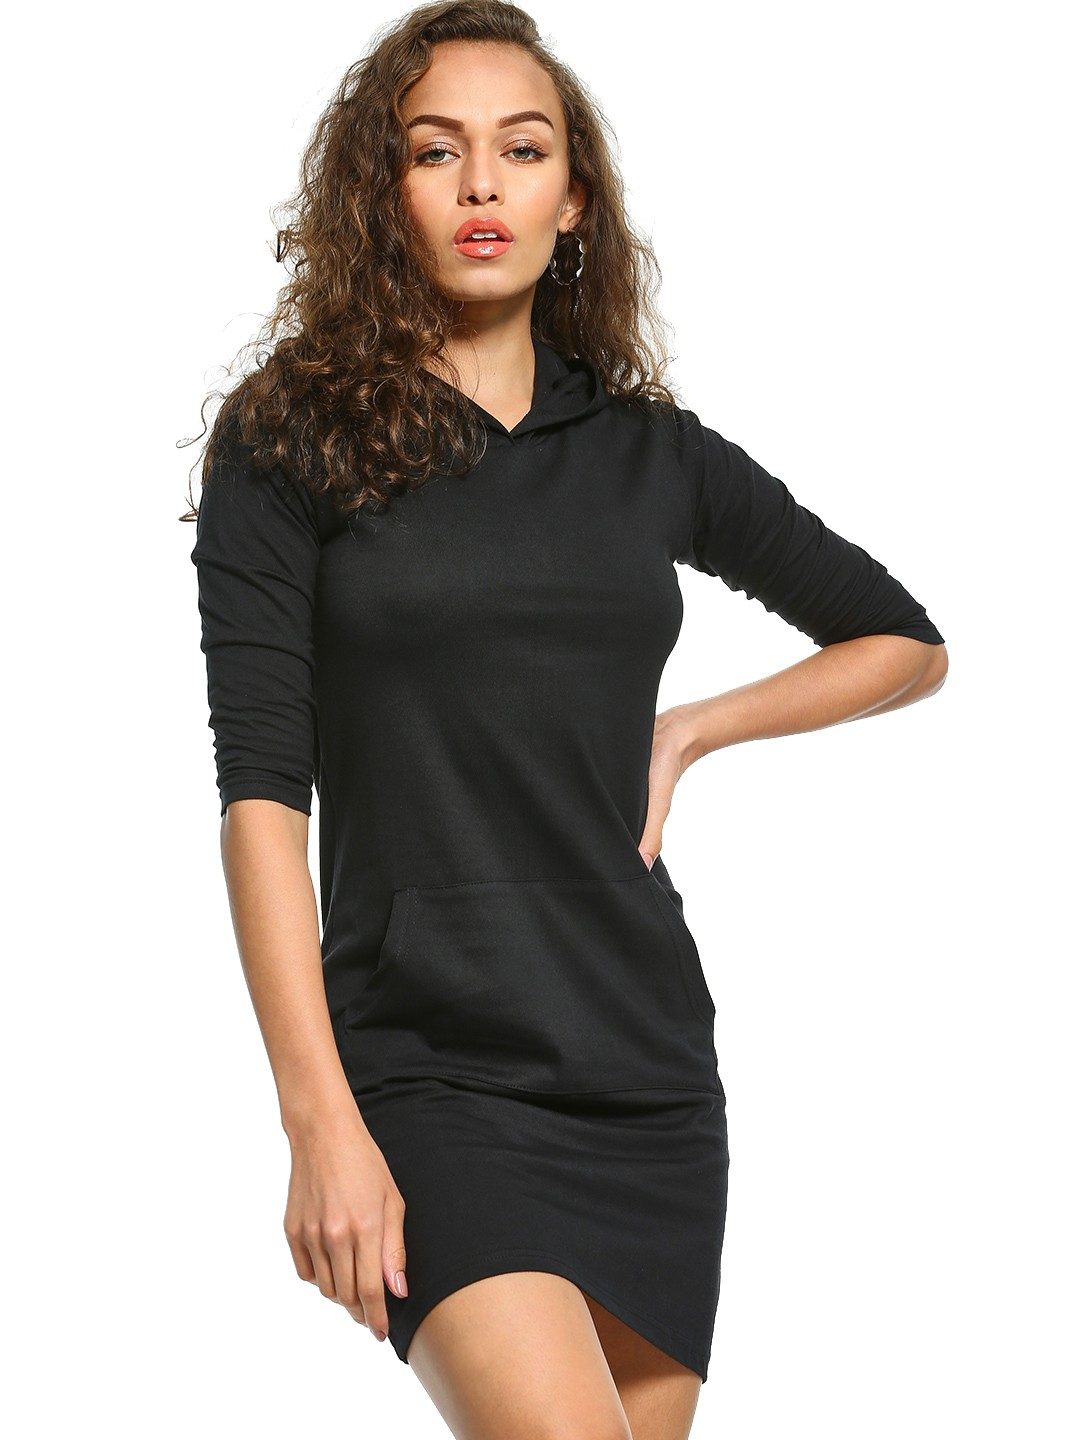 The Dry State Black Hooded T-Shirt Dress 1